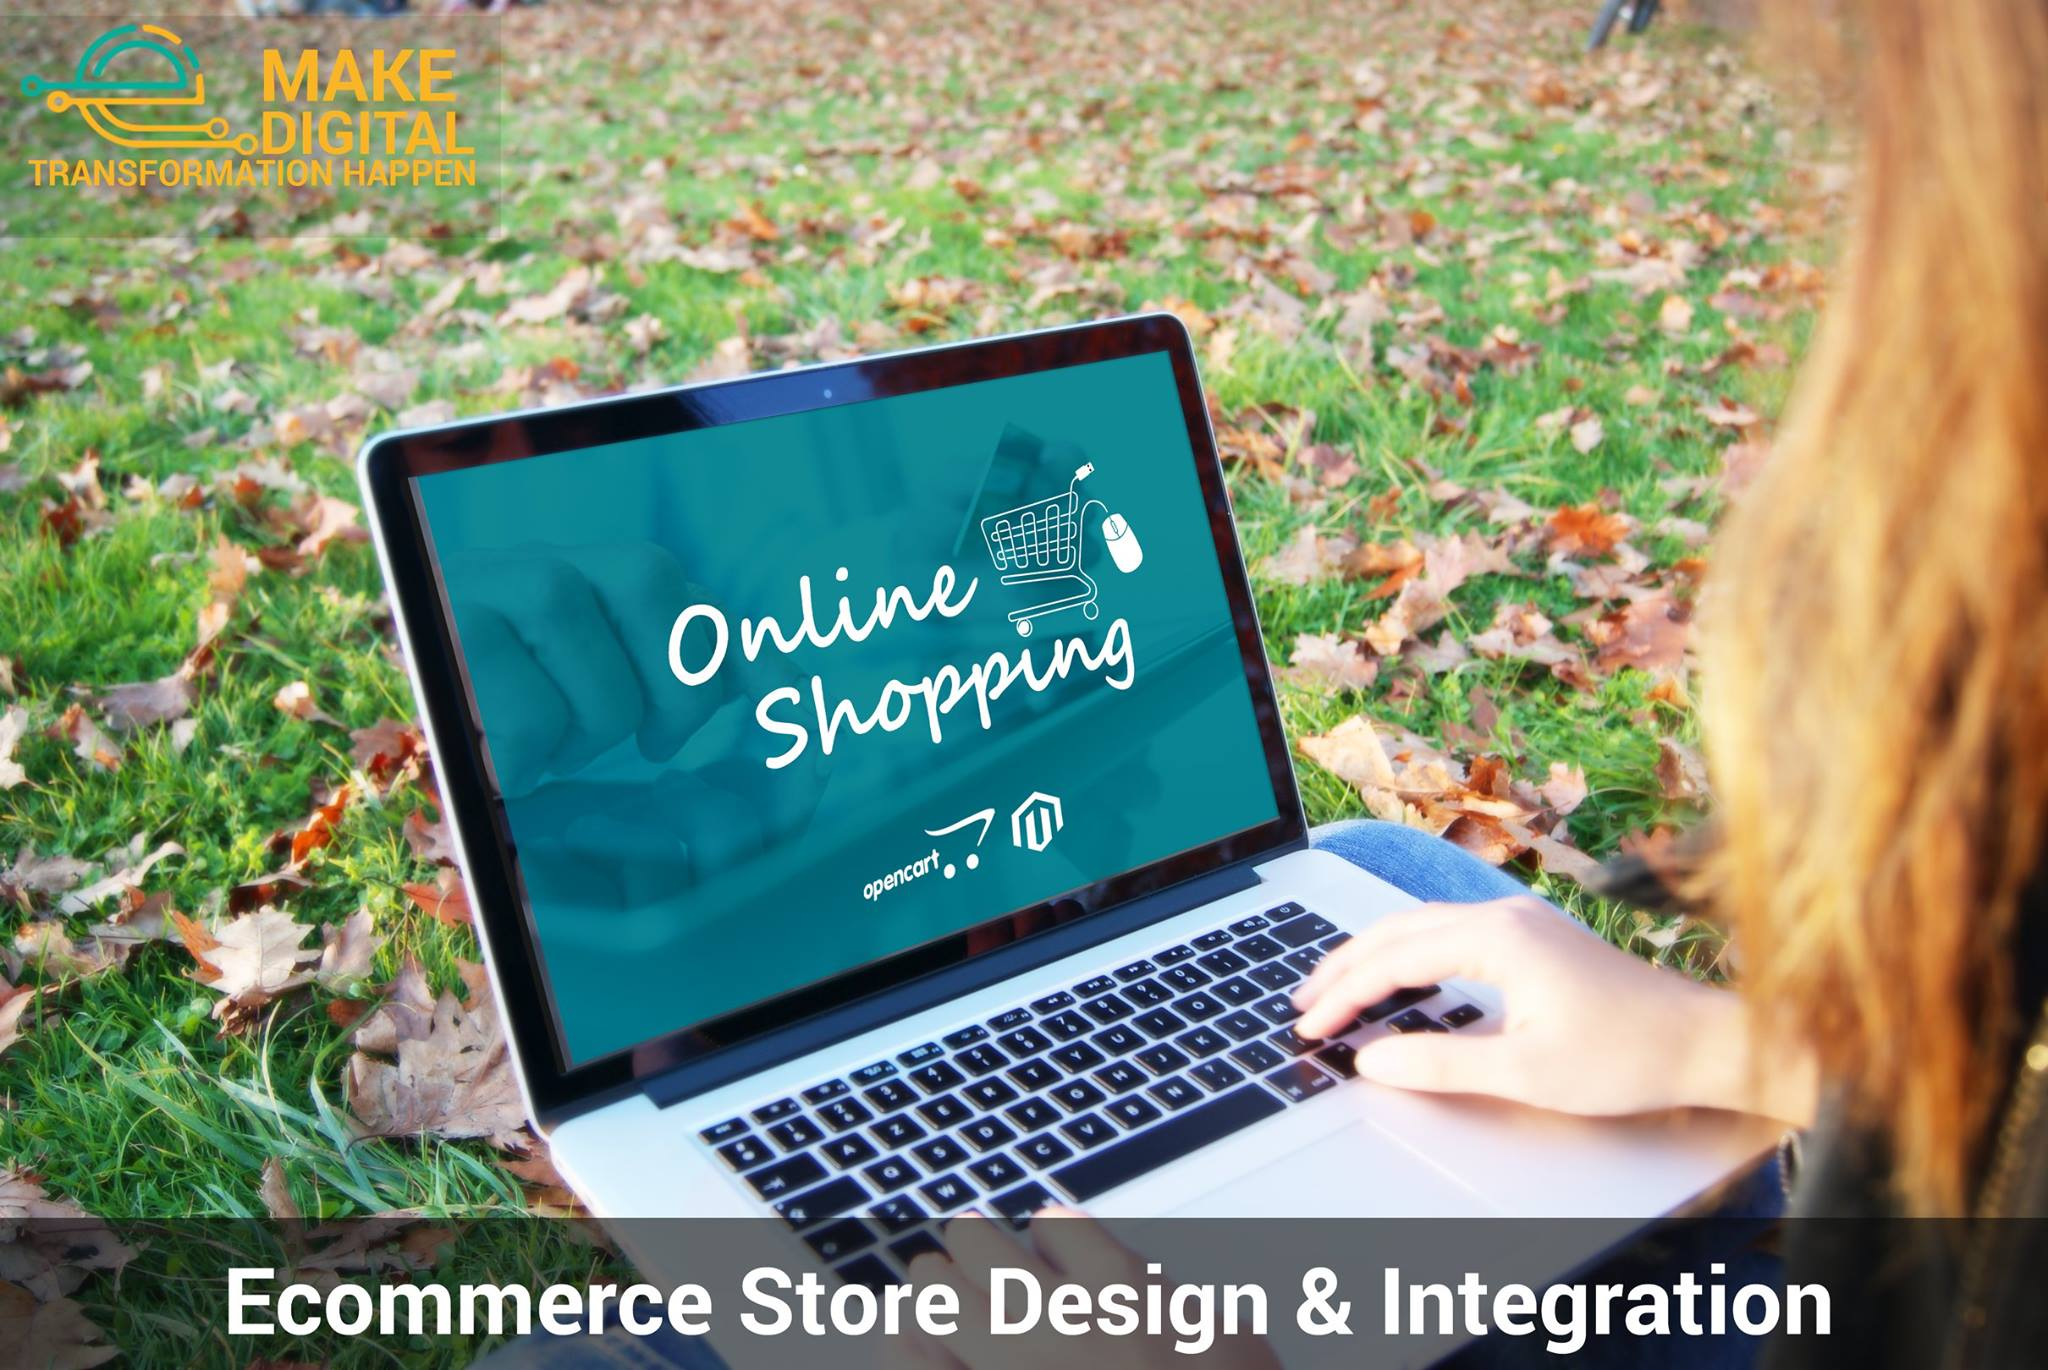 E-Commerce Store Design & Integration